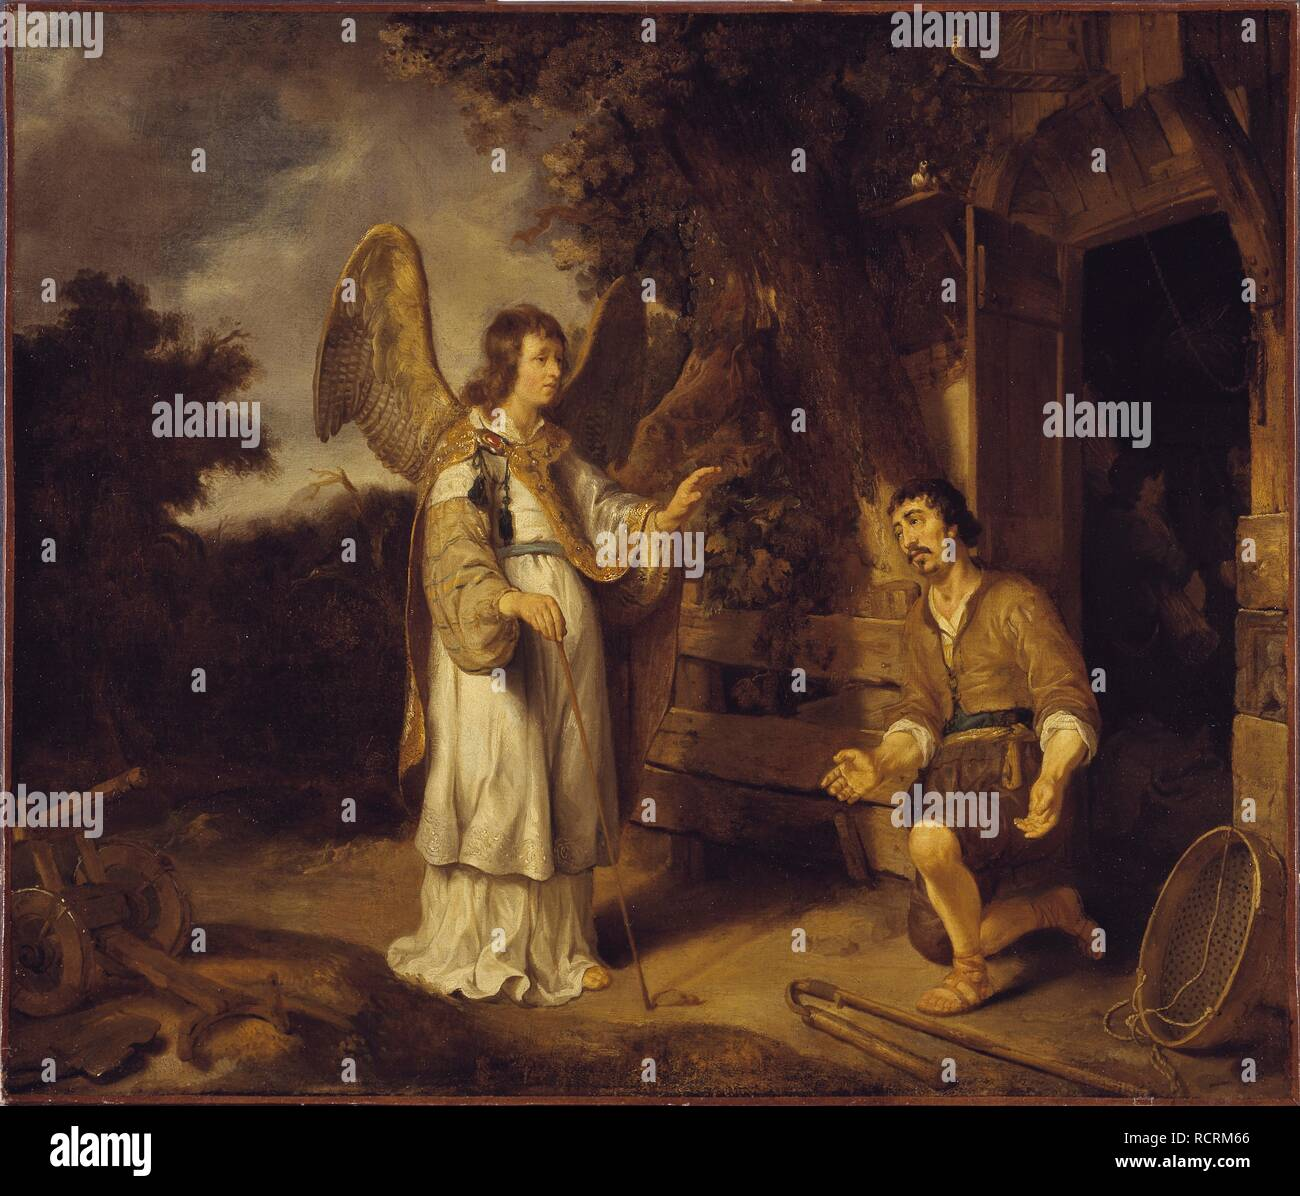 The Angel of the Lord Visits Gideon. Museum: Nationalmuseum Stockholm. Author: Eeckhout, Gerbrand van den. - Stock Image